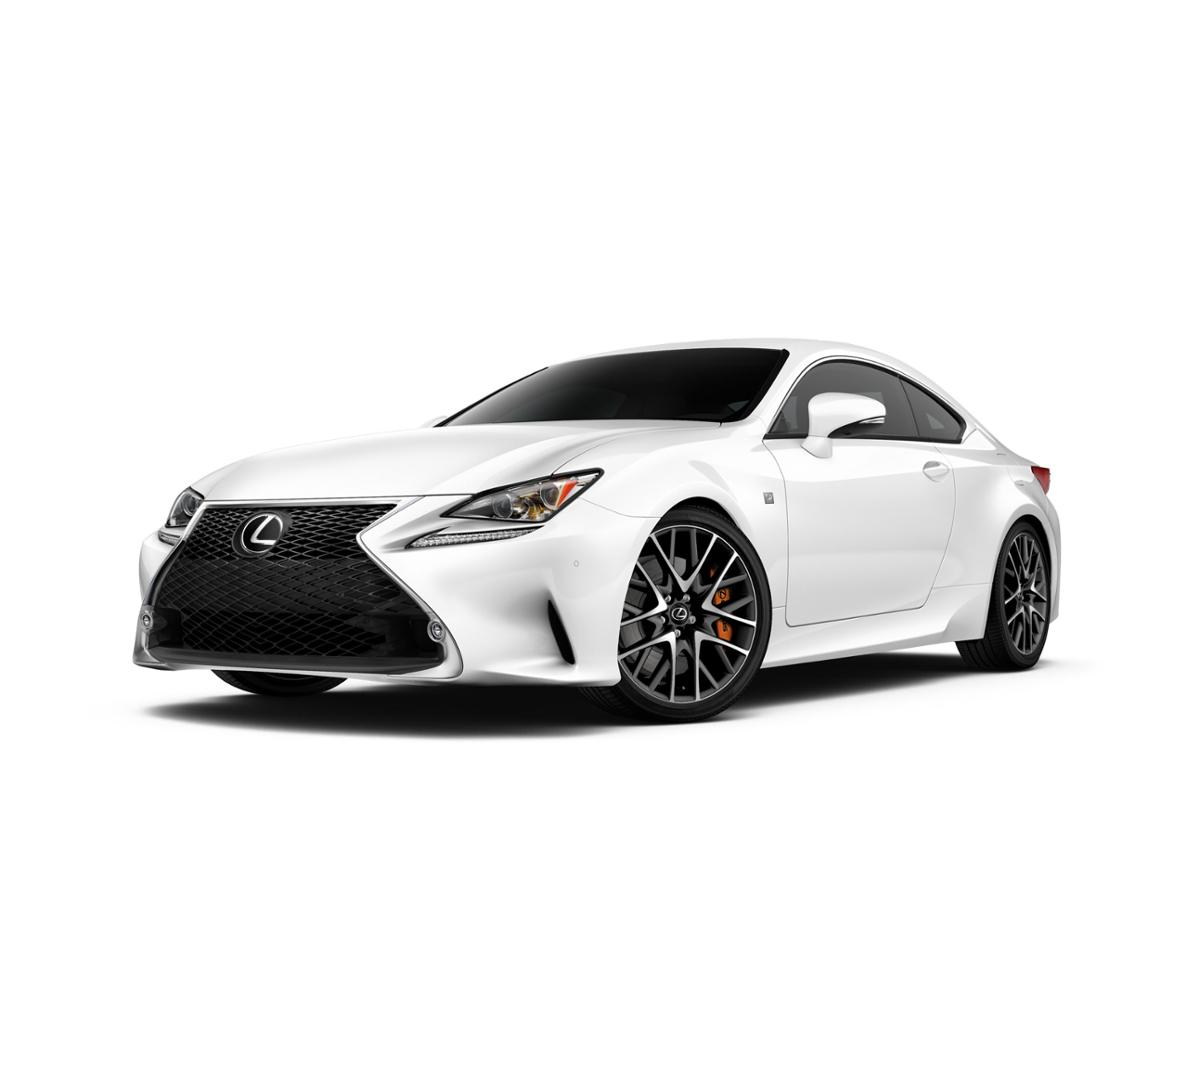 2018 Lexus RC 300 Vehicle Photo in Mission Viejo, CA 92692